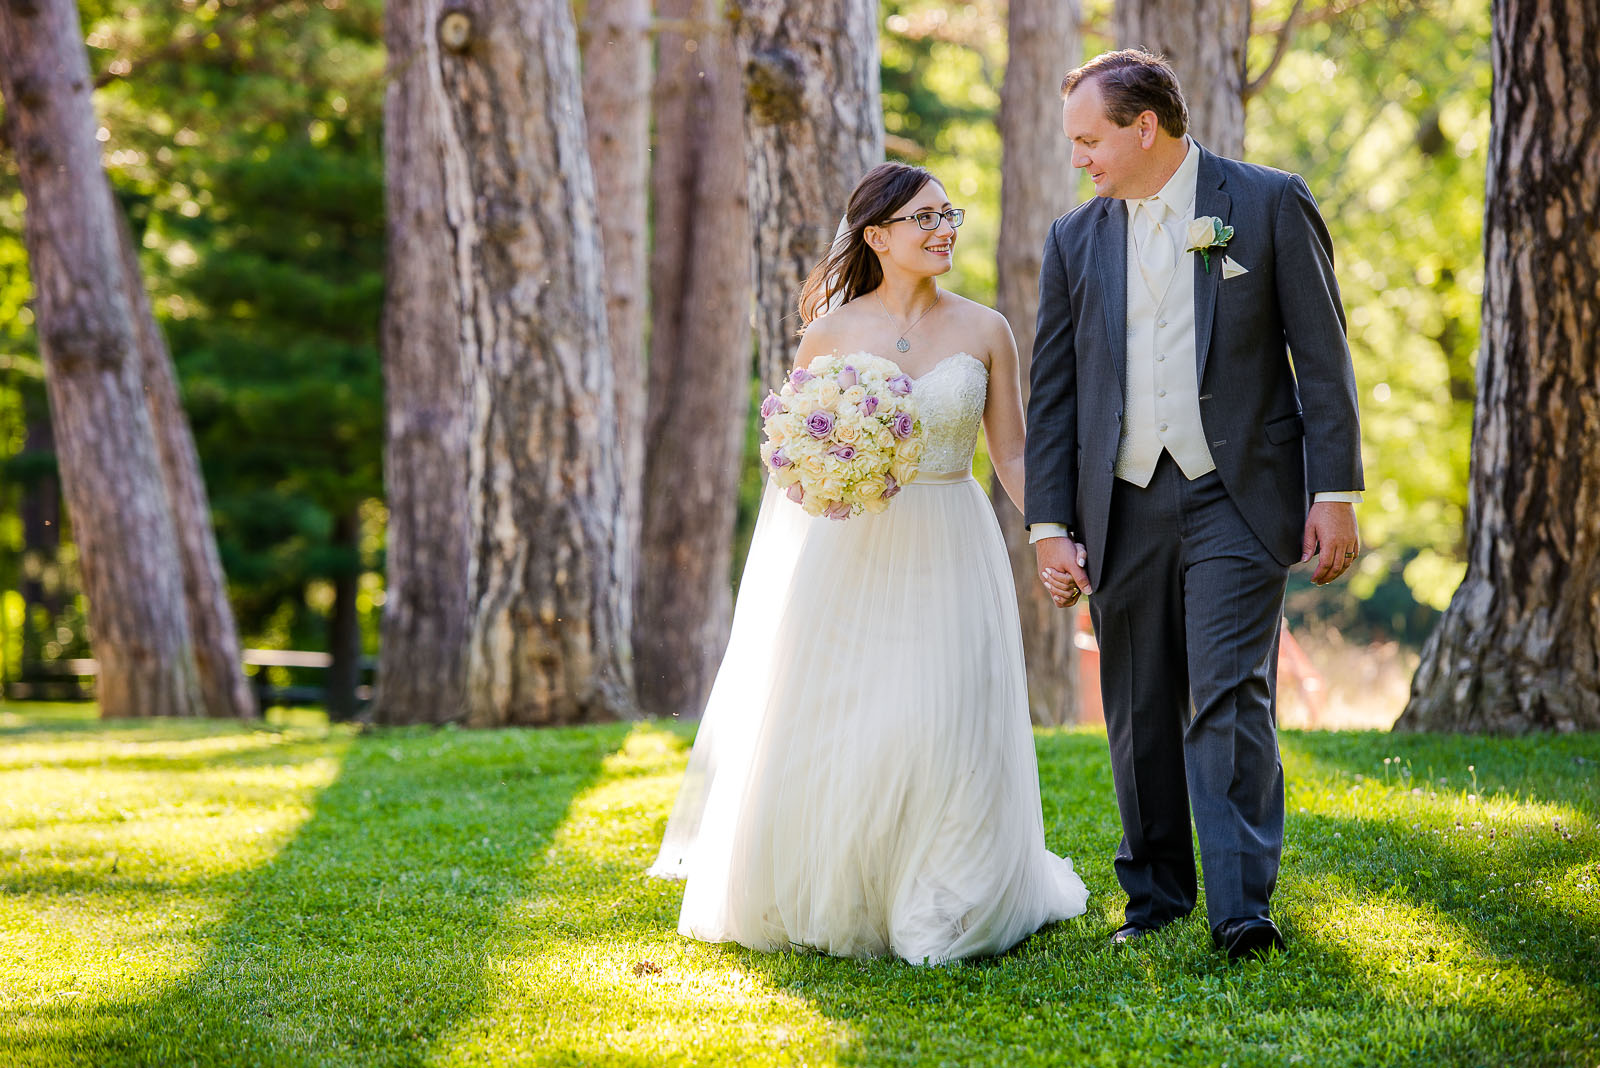 Eric_and_Christy_Photography_Blog_2018_Portraits-22